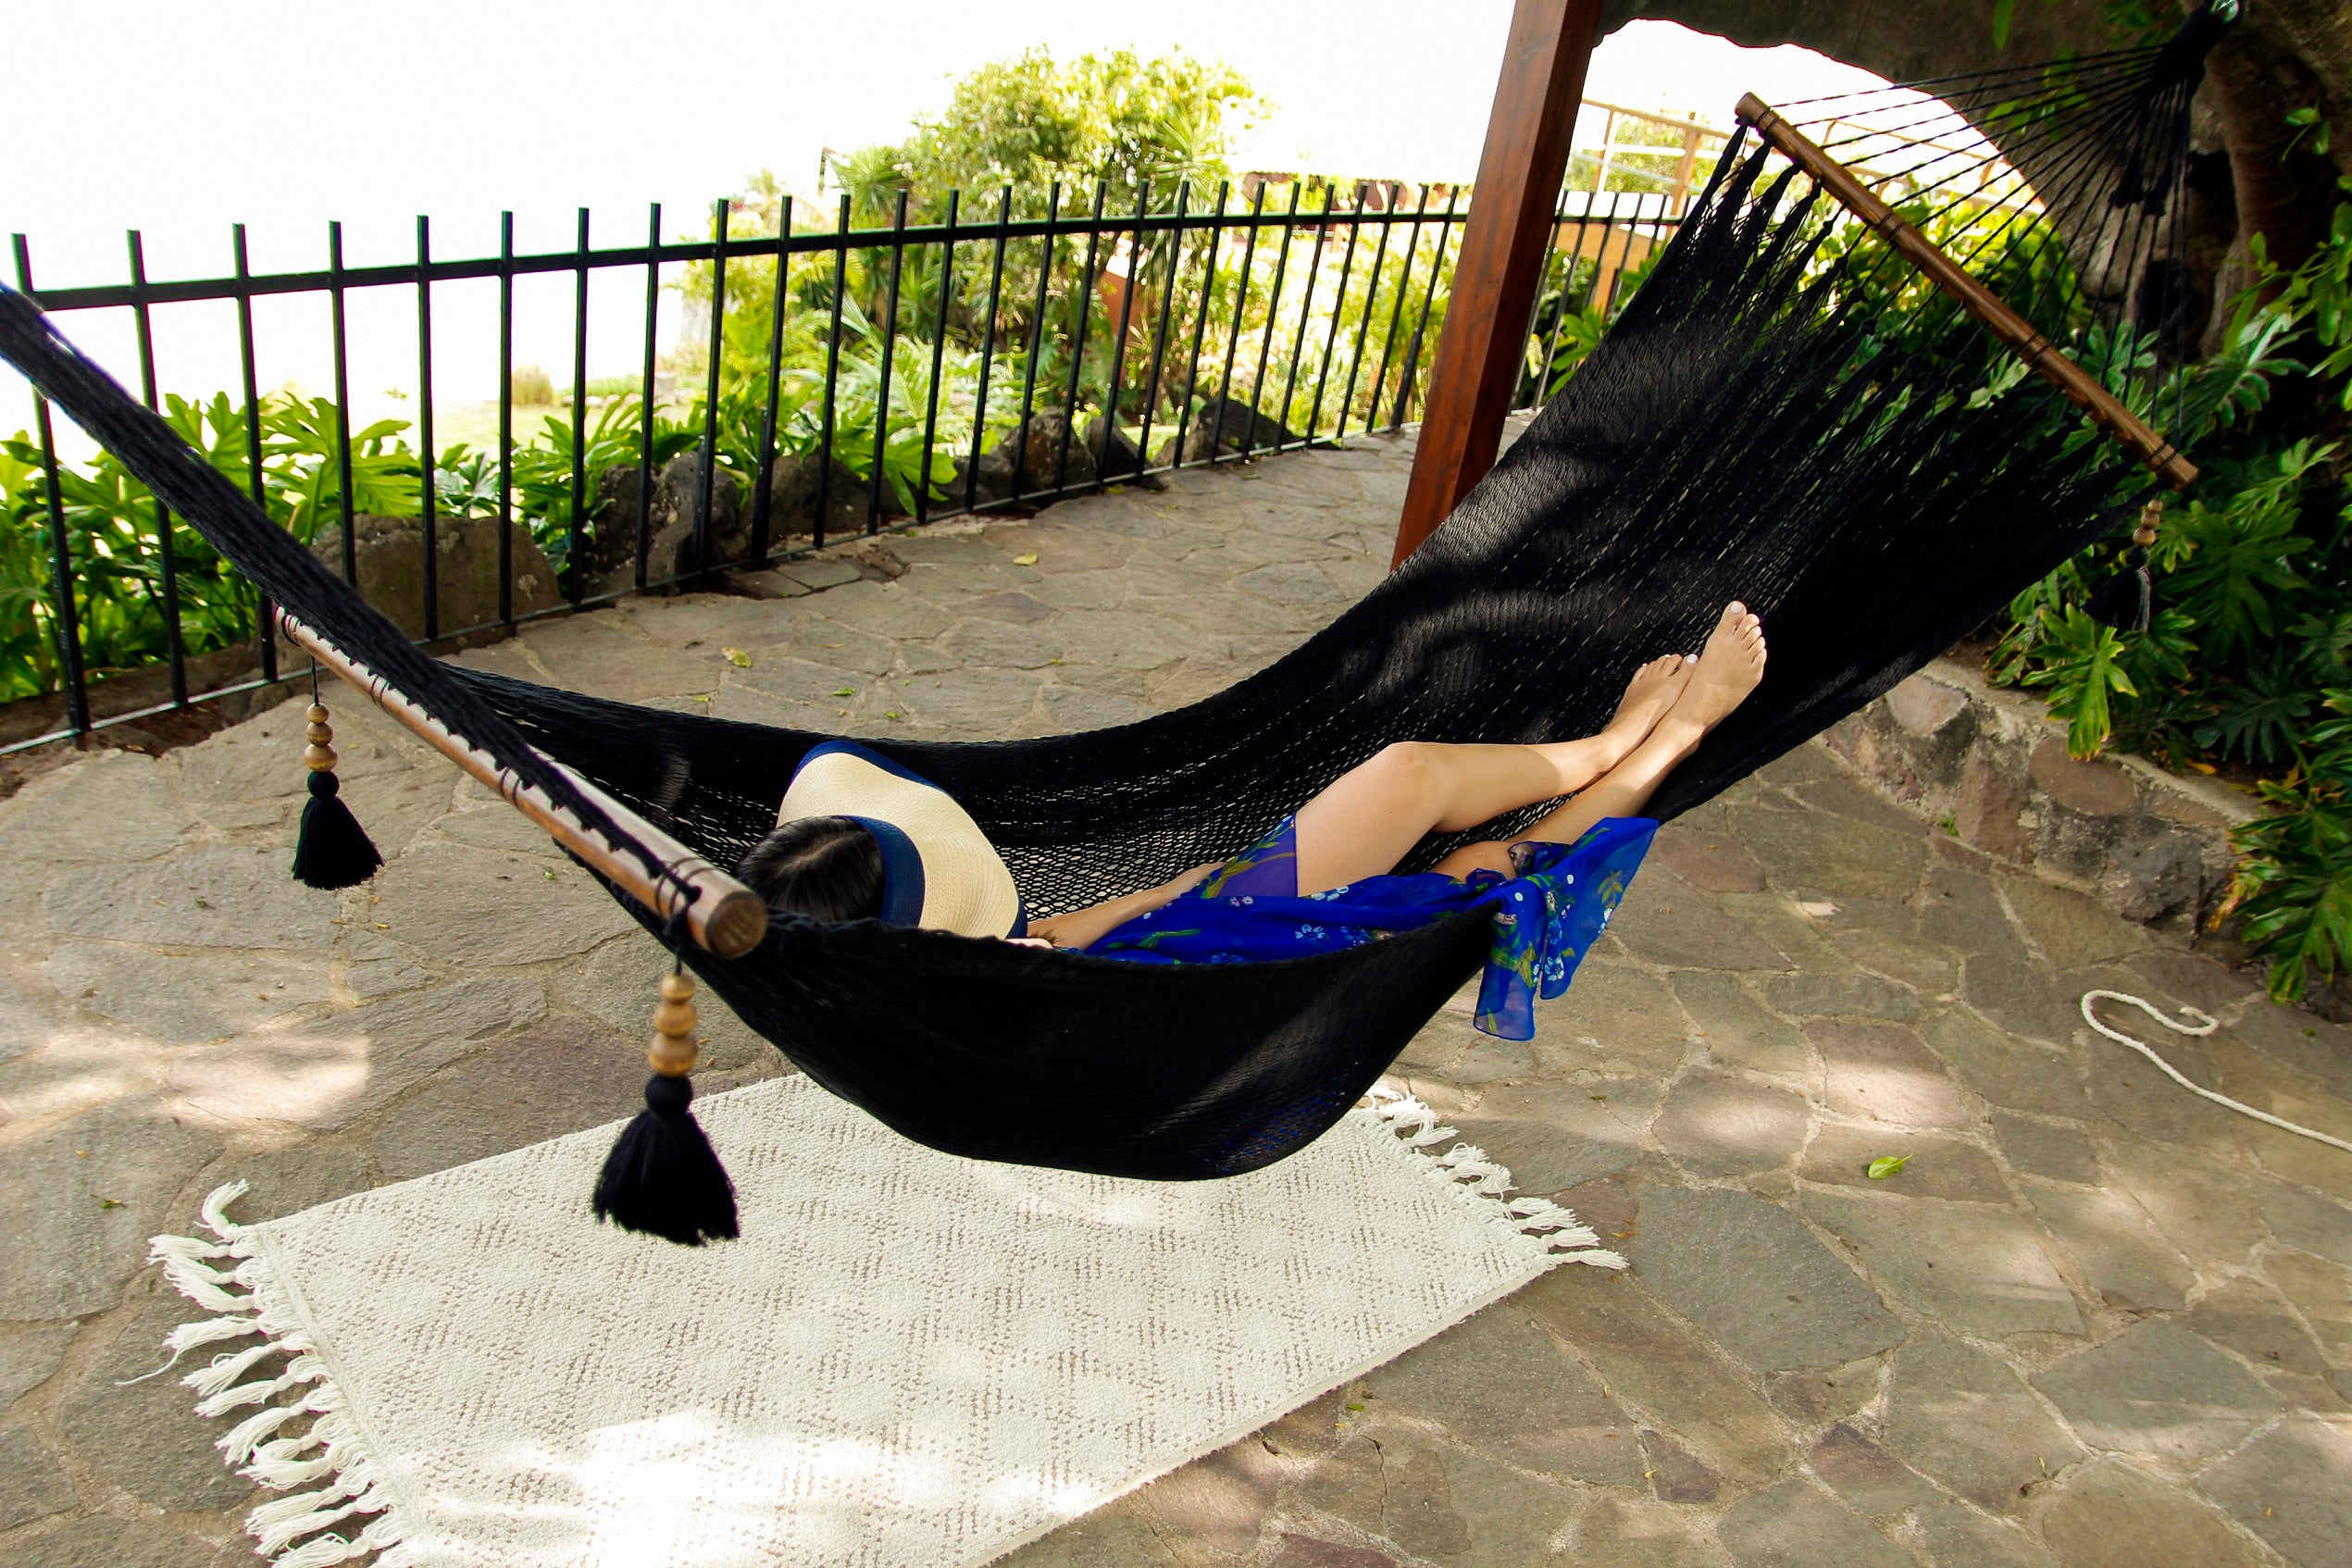 relaxing in a hammock with wood spreaders